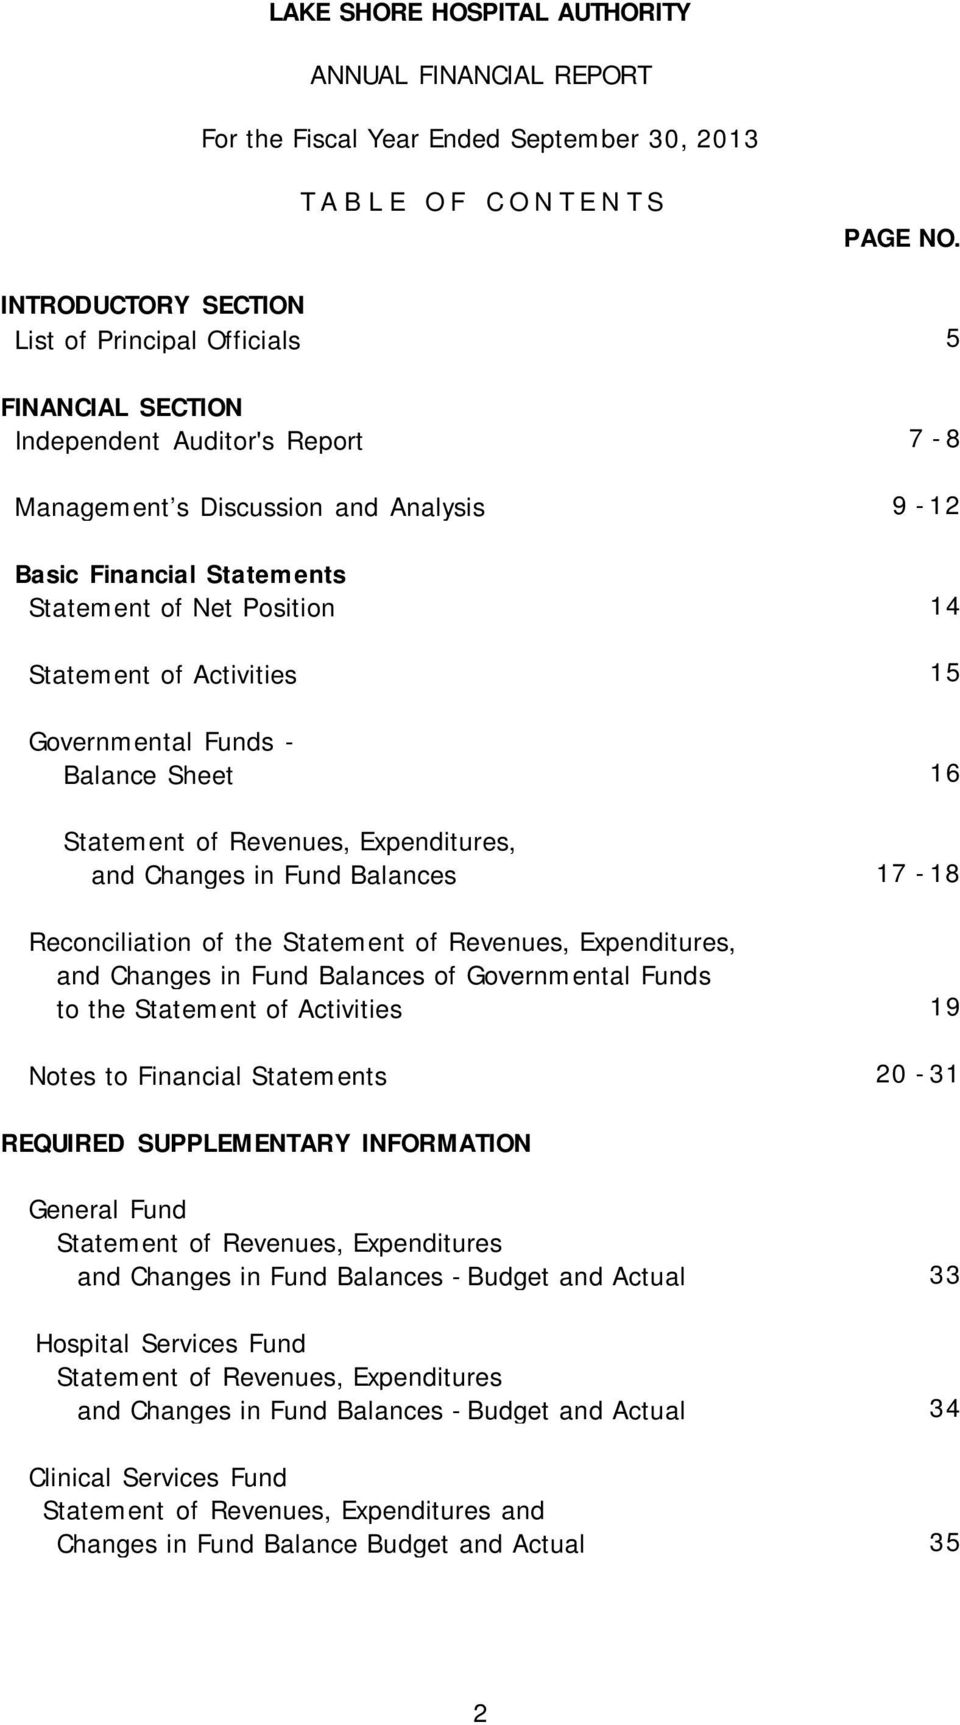 Statement of Activities 15 Governmental Funds - Balance Sheet 16 Statement of Revenues, Expenditures, and Changes in Fund Balances 17-18 Reconciliation of the Statement of Revenues, Expenditures, and